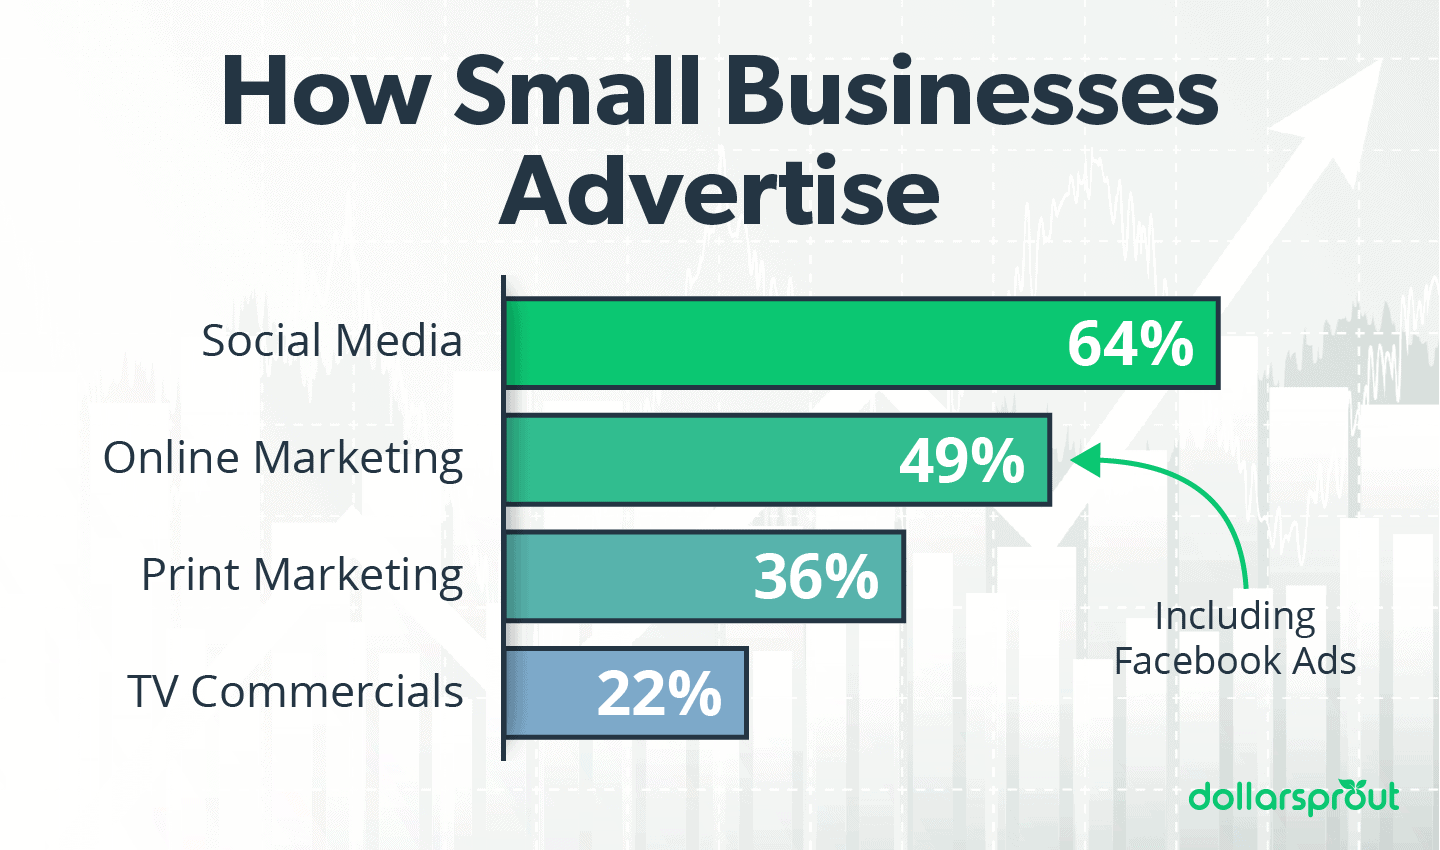 How Small Businesses Advertise 2